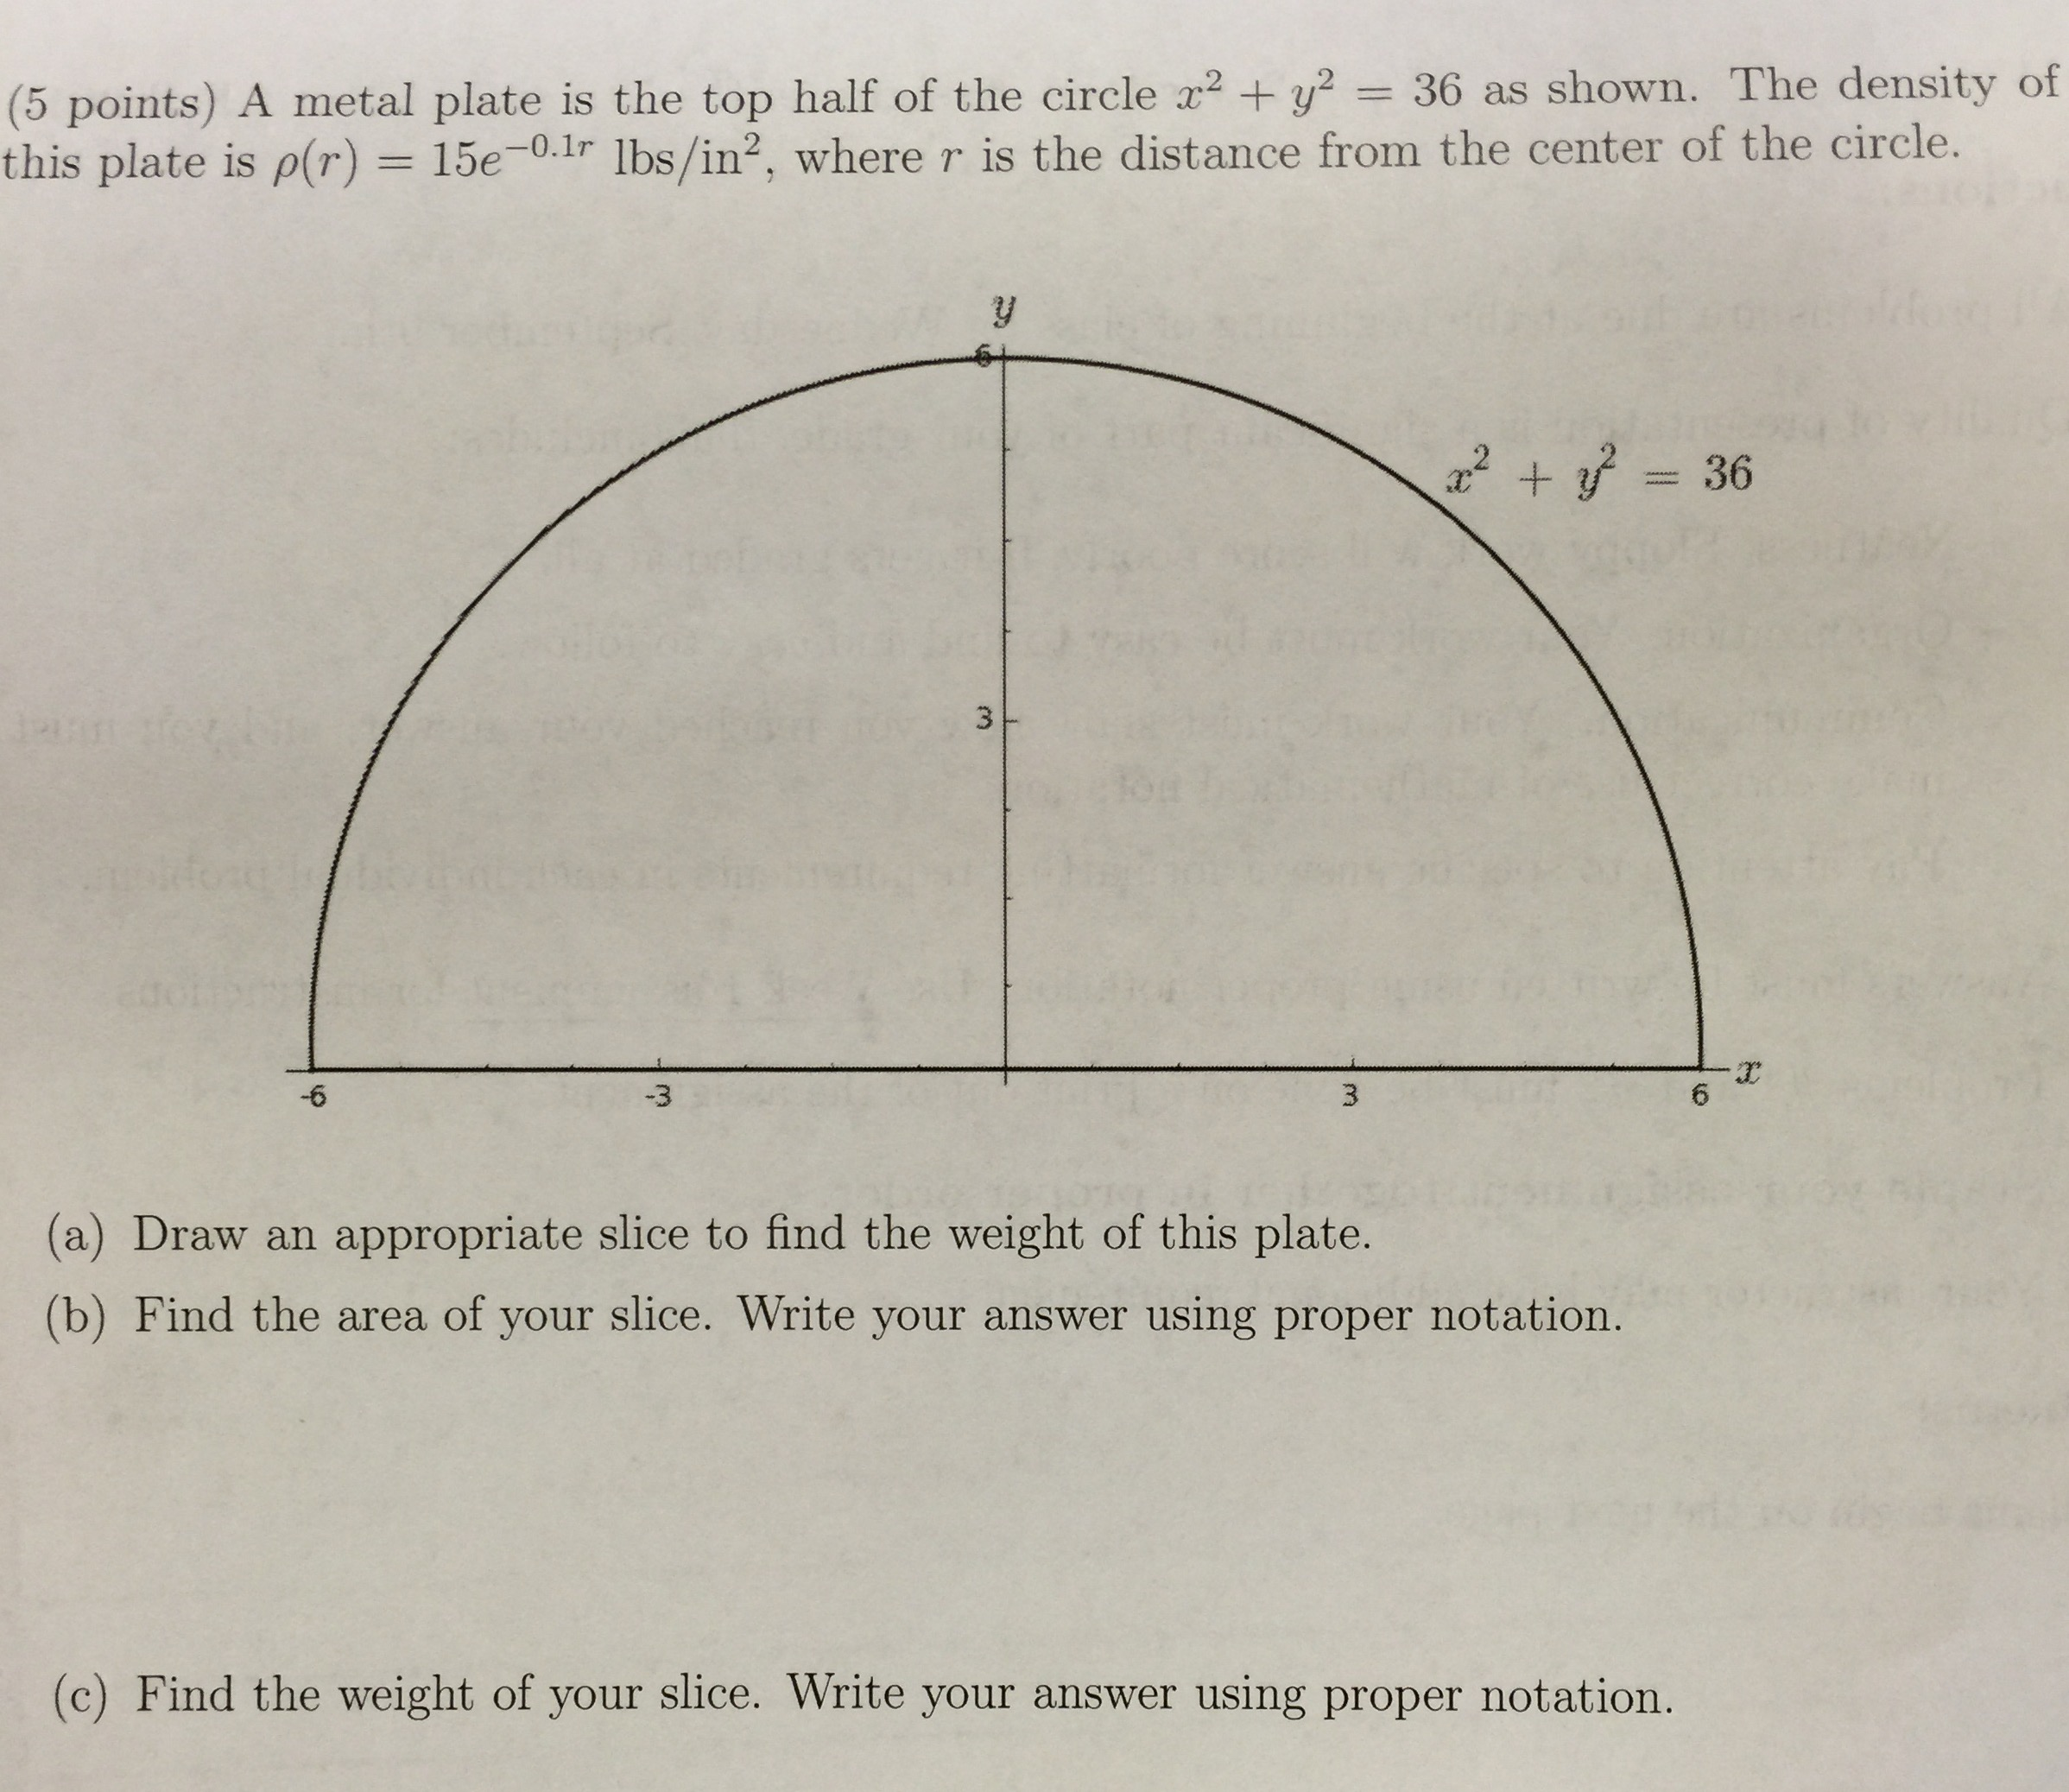 Image For A Metal Plate Is The Top Half Of The Circle X^2 +